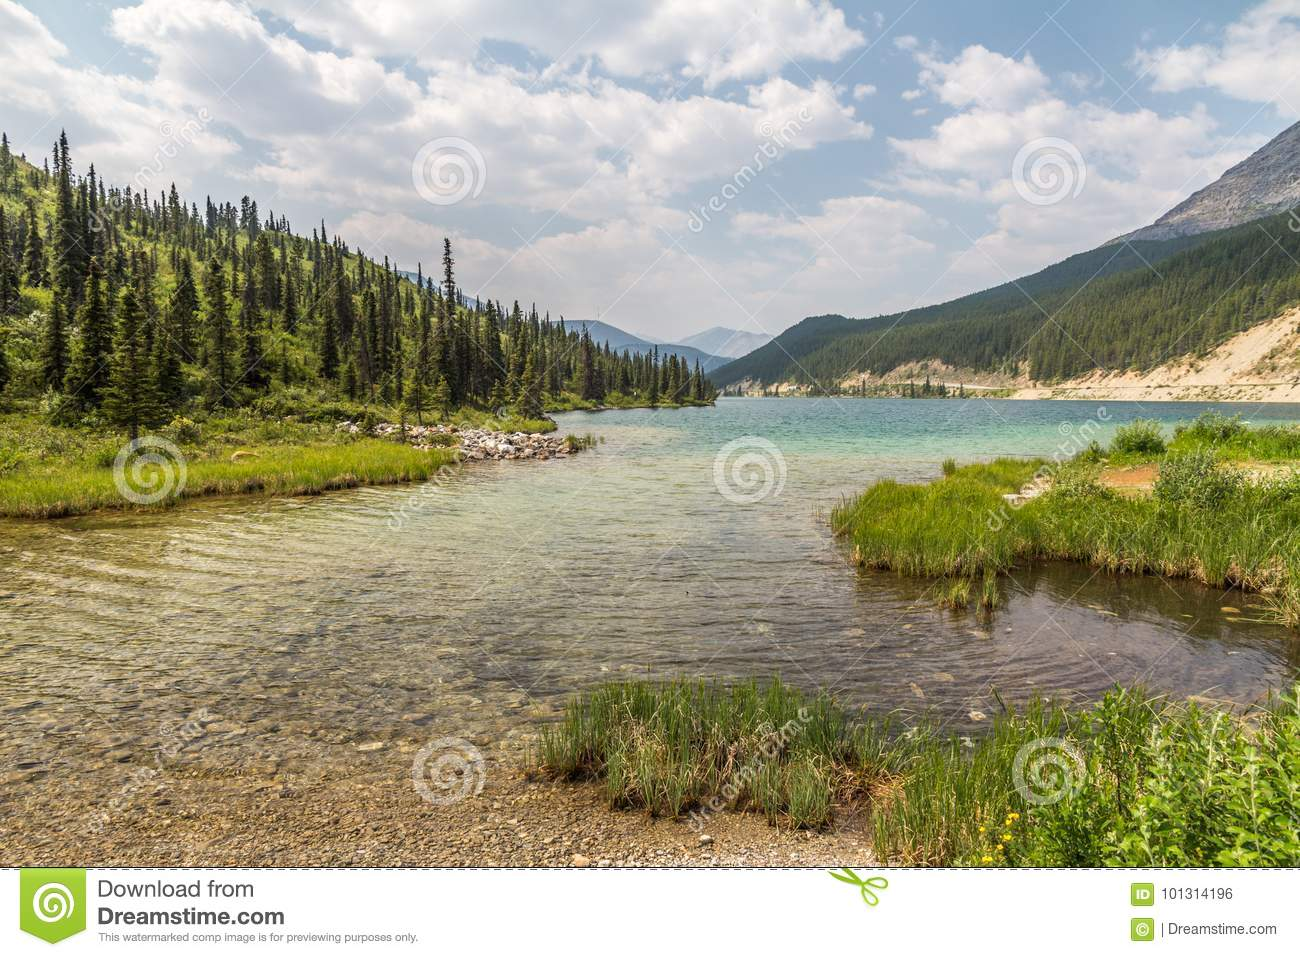 Clear, turqouise waters of Summit Lake, Northern Rocky Mountains, BC